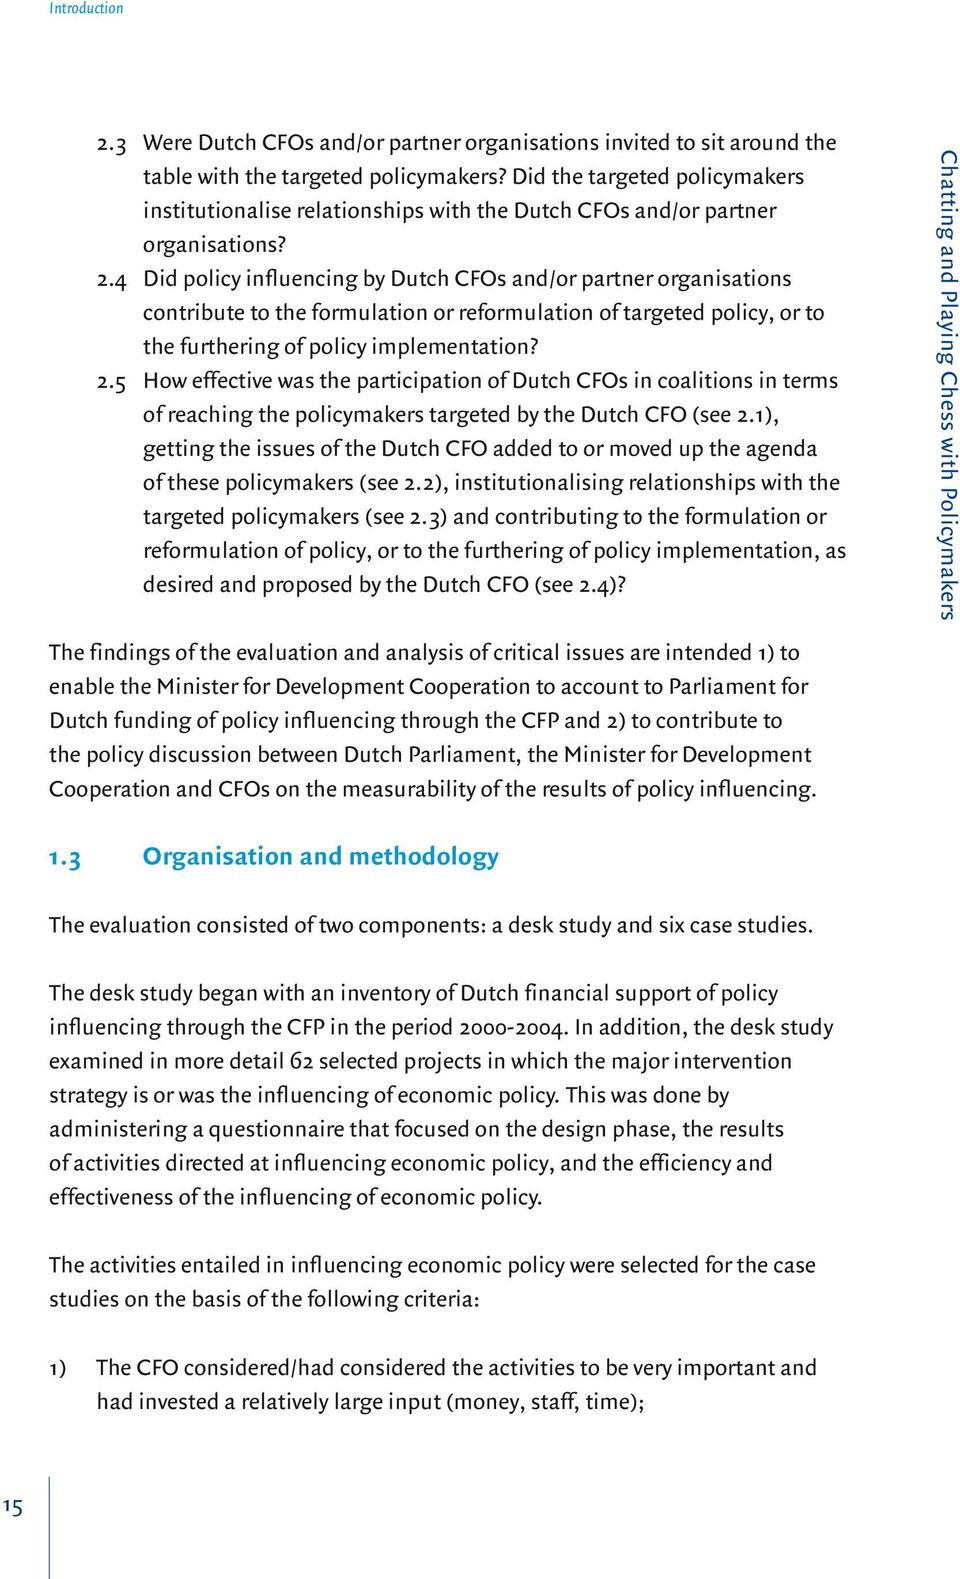 4 Did policy influencing by Dutch CFOs and/or partner organisations contribute to the formulation or reformulation of targeted policy, or to the furthering of policy implementation? 2.